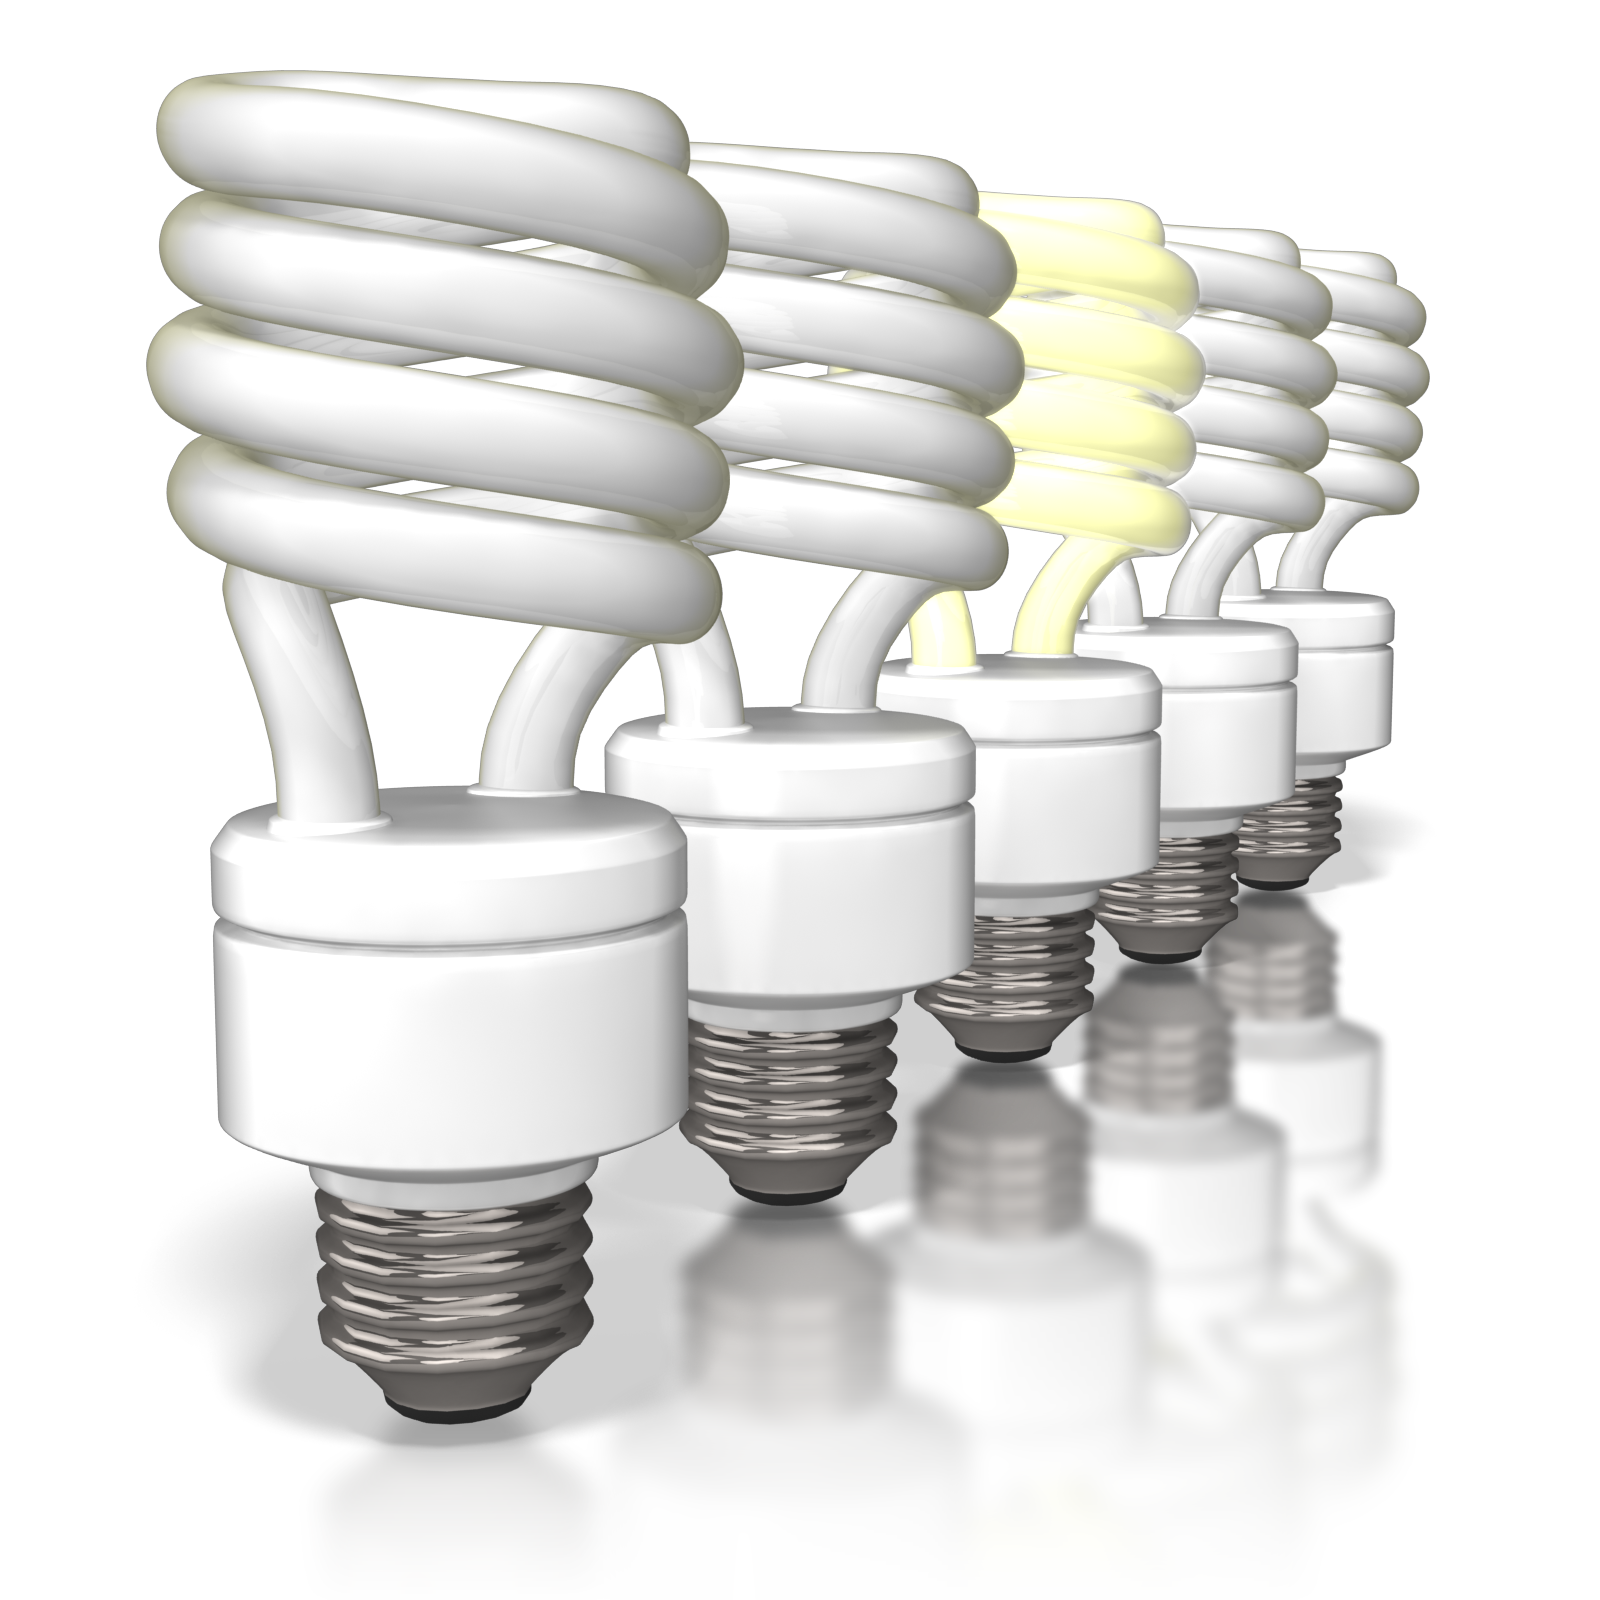 Saving money on your electric bills, part 3 - Winchester to Northern ... for Electric Lamp Png  56mzq